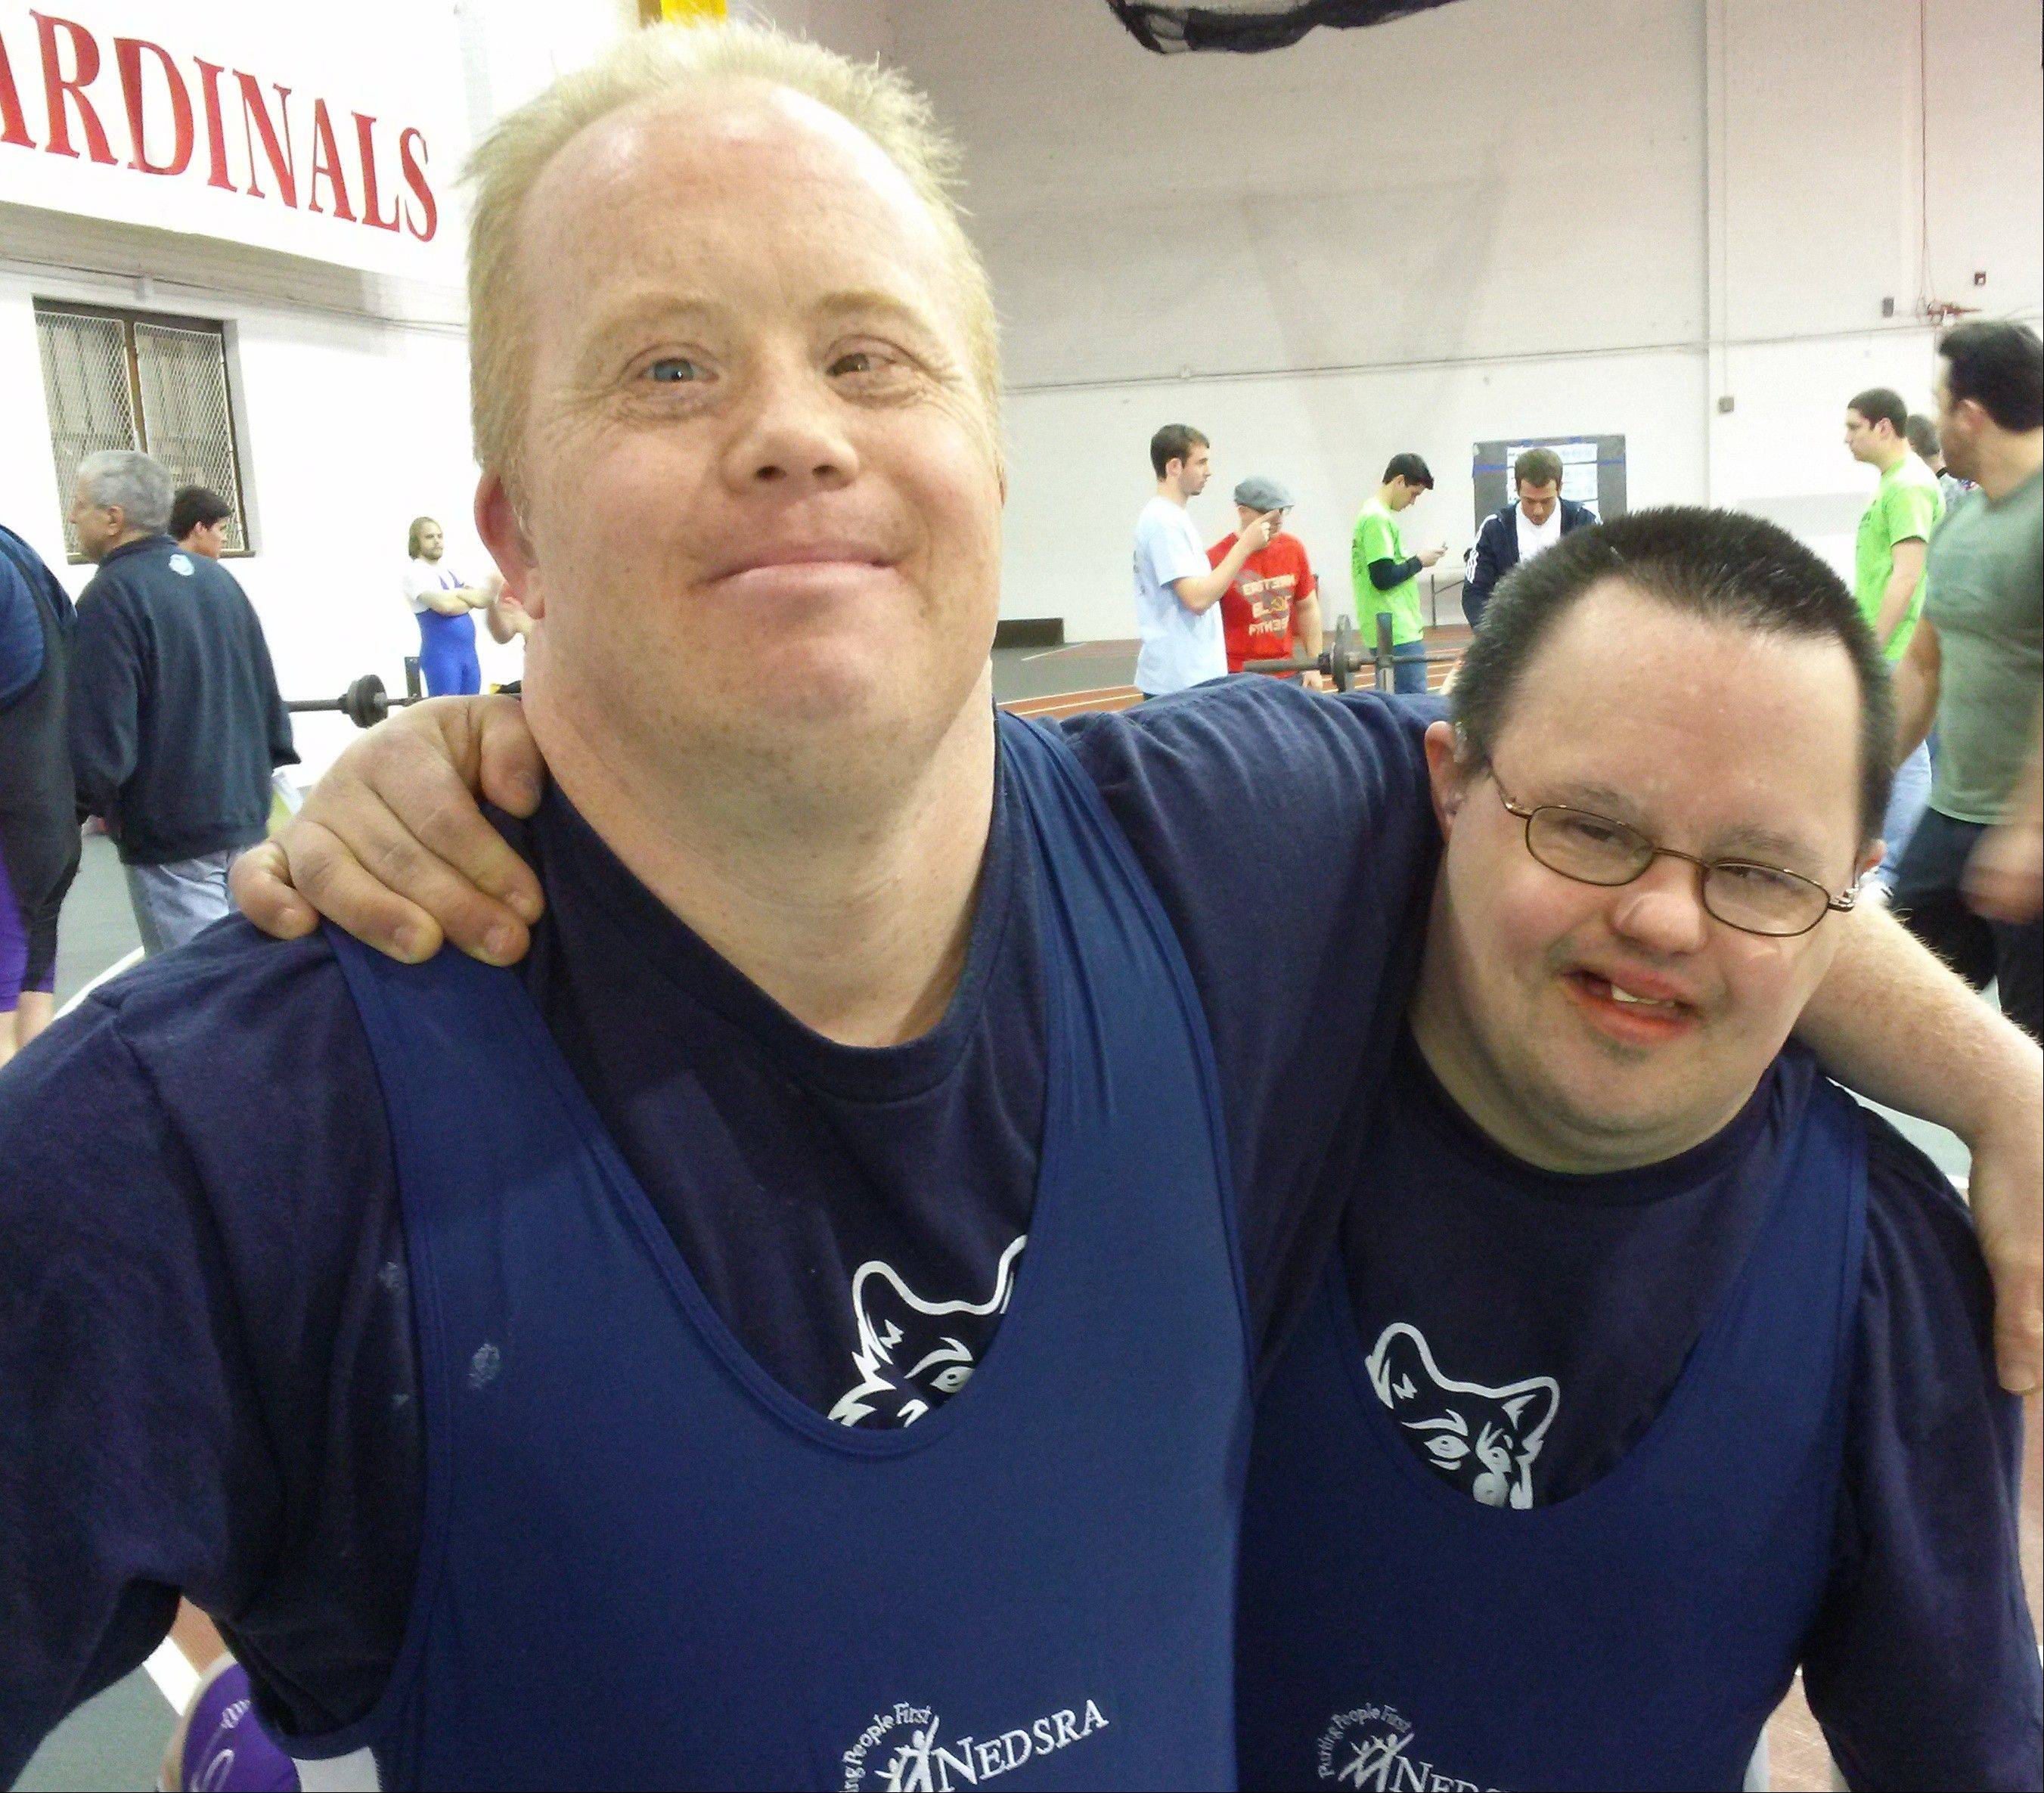 Ted Callahan, left, of Lombard with workout buddy Ray Strzewski of Roselle, competes in Special Olympics weightlifting events.